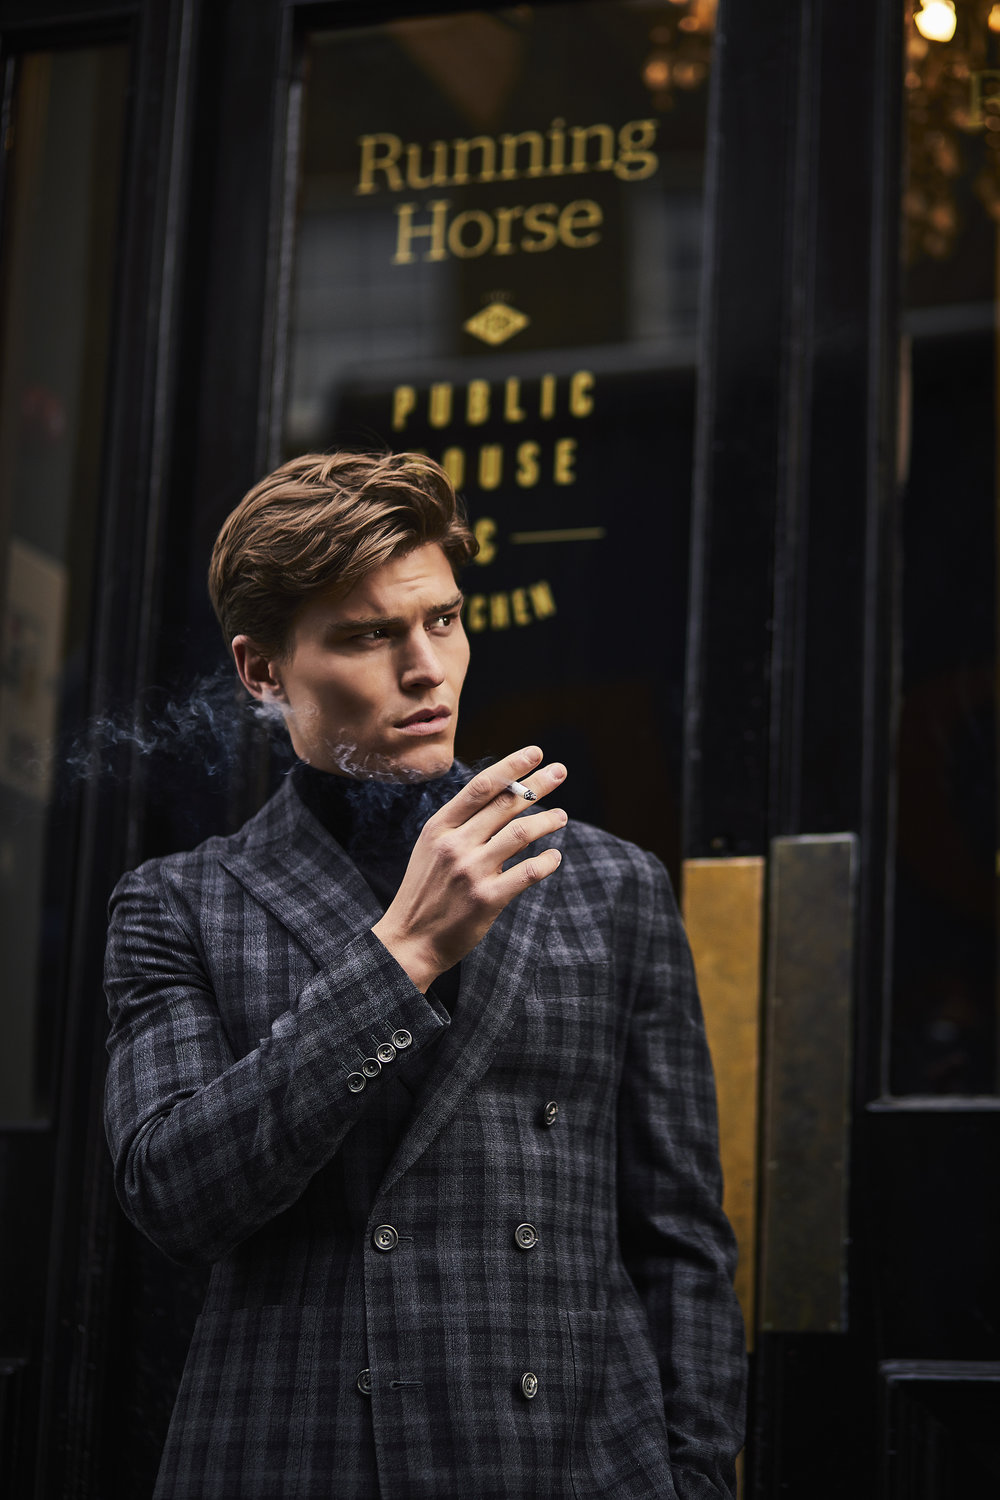 20161209_Gents_Journal_Oliver_Cheshire_0333_Retouched.jpg